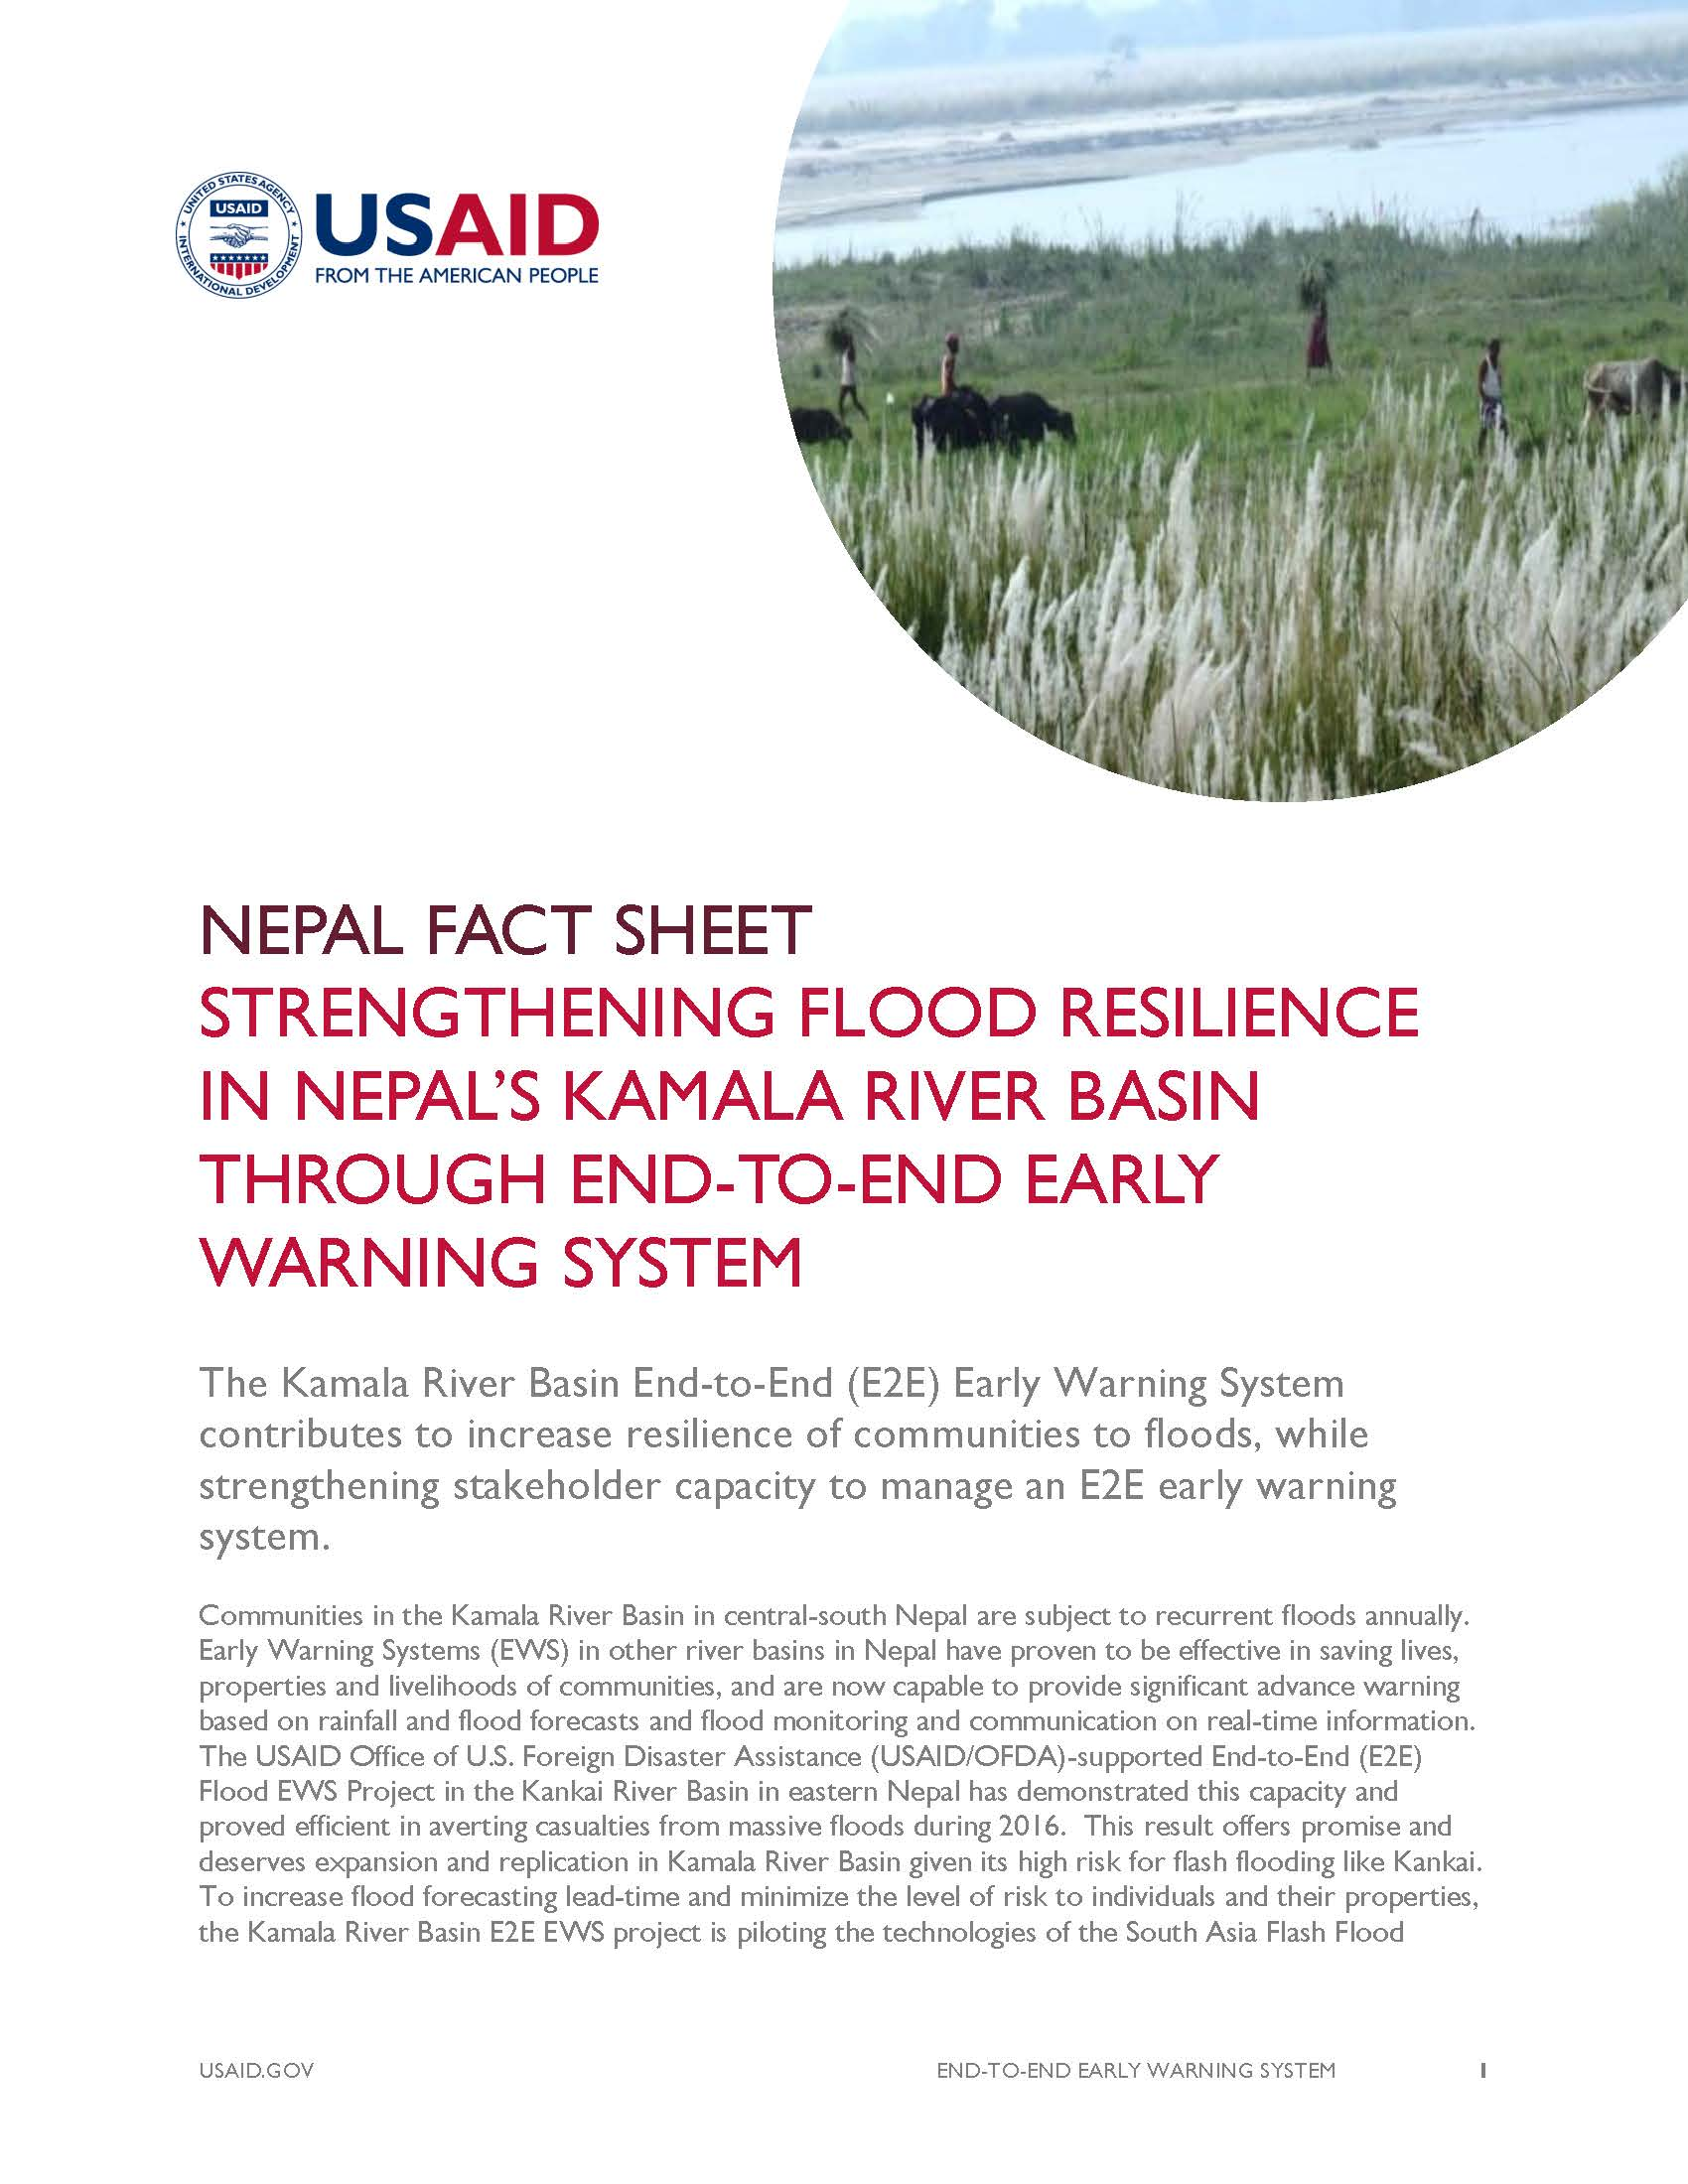 Fact Sheet: STRENGTHENING FLOOD RESILIENCE IN NEPAL'S KAMALA RIVER BASIN THROUGH END-TO-END EARLY WARNING SYSTEM